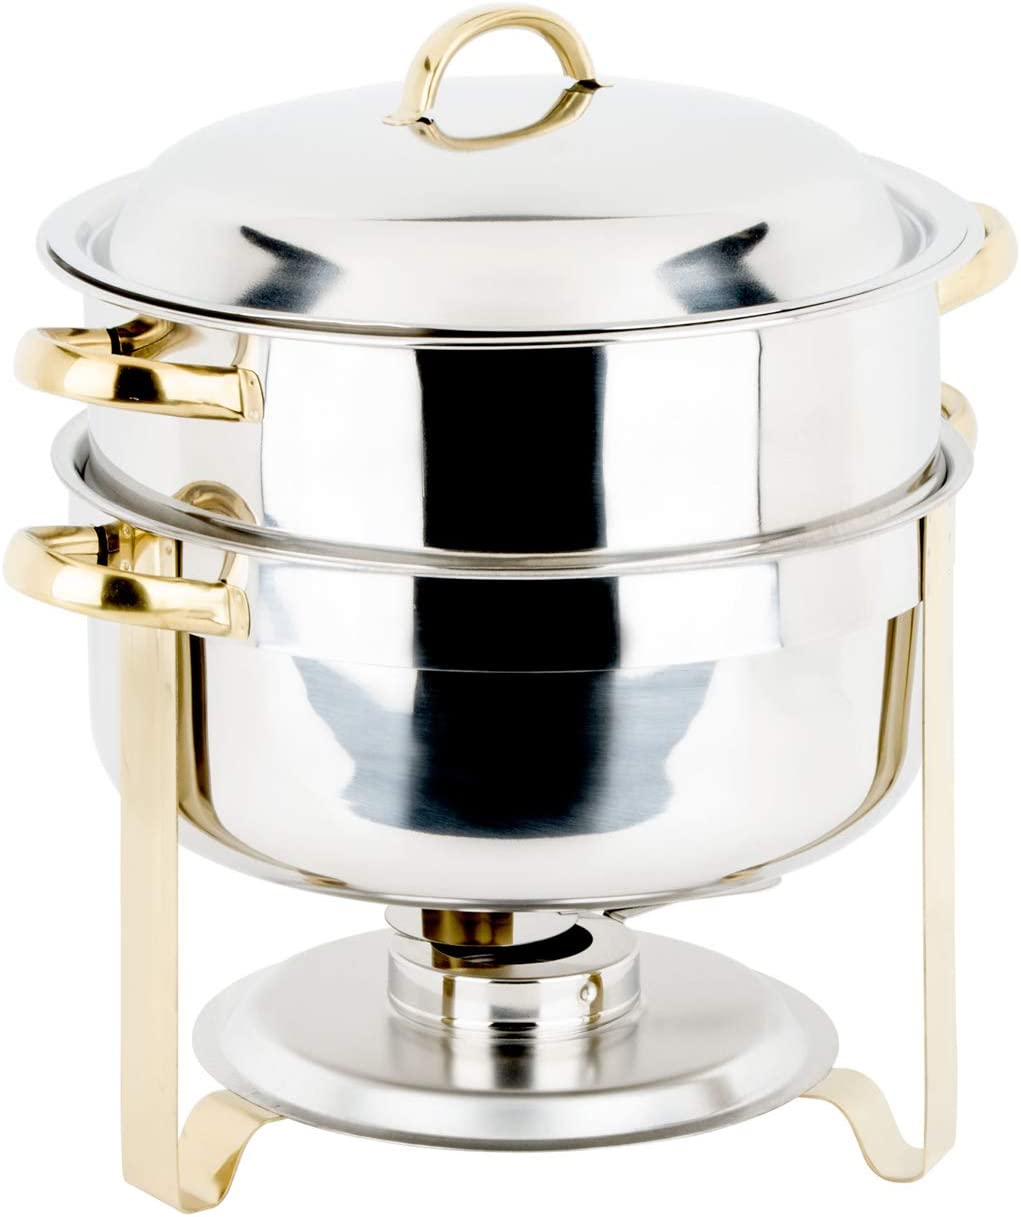 Choice 14 Qt. Deluxe Round Accent 2 New products, world's highest quality popular! Soup Chafer Gold Popular standard